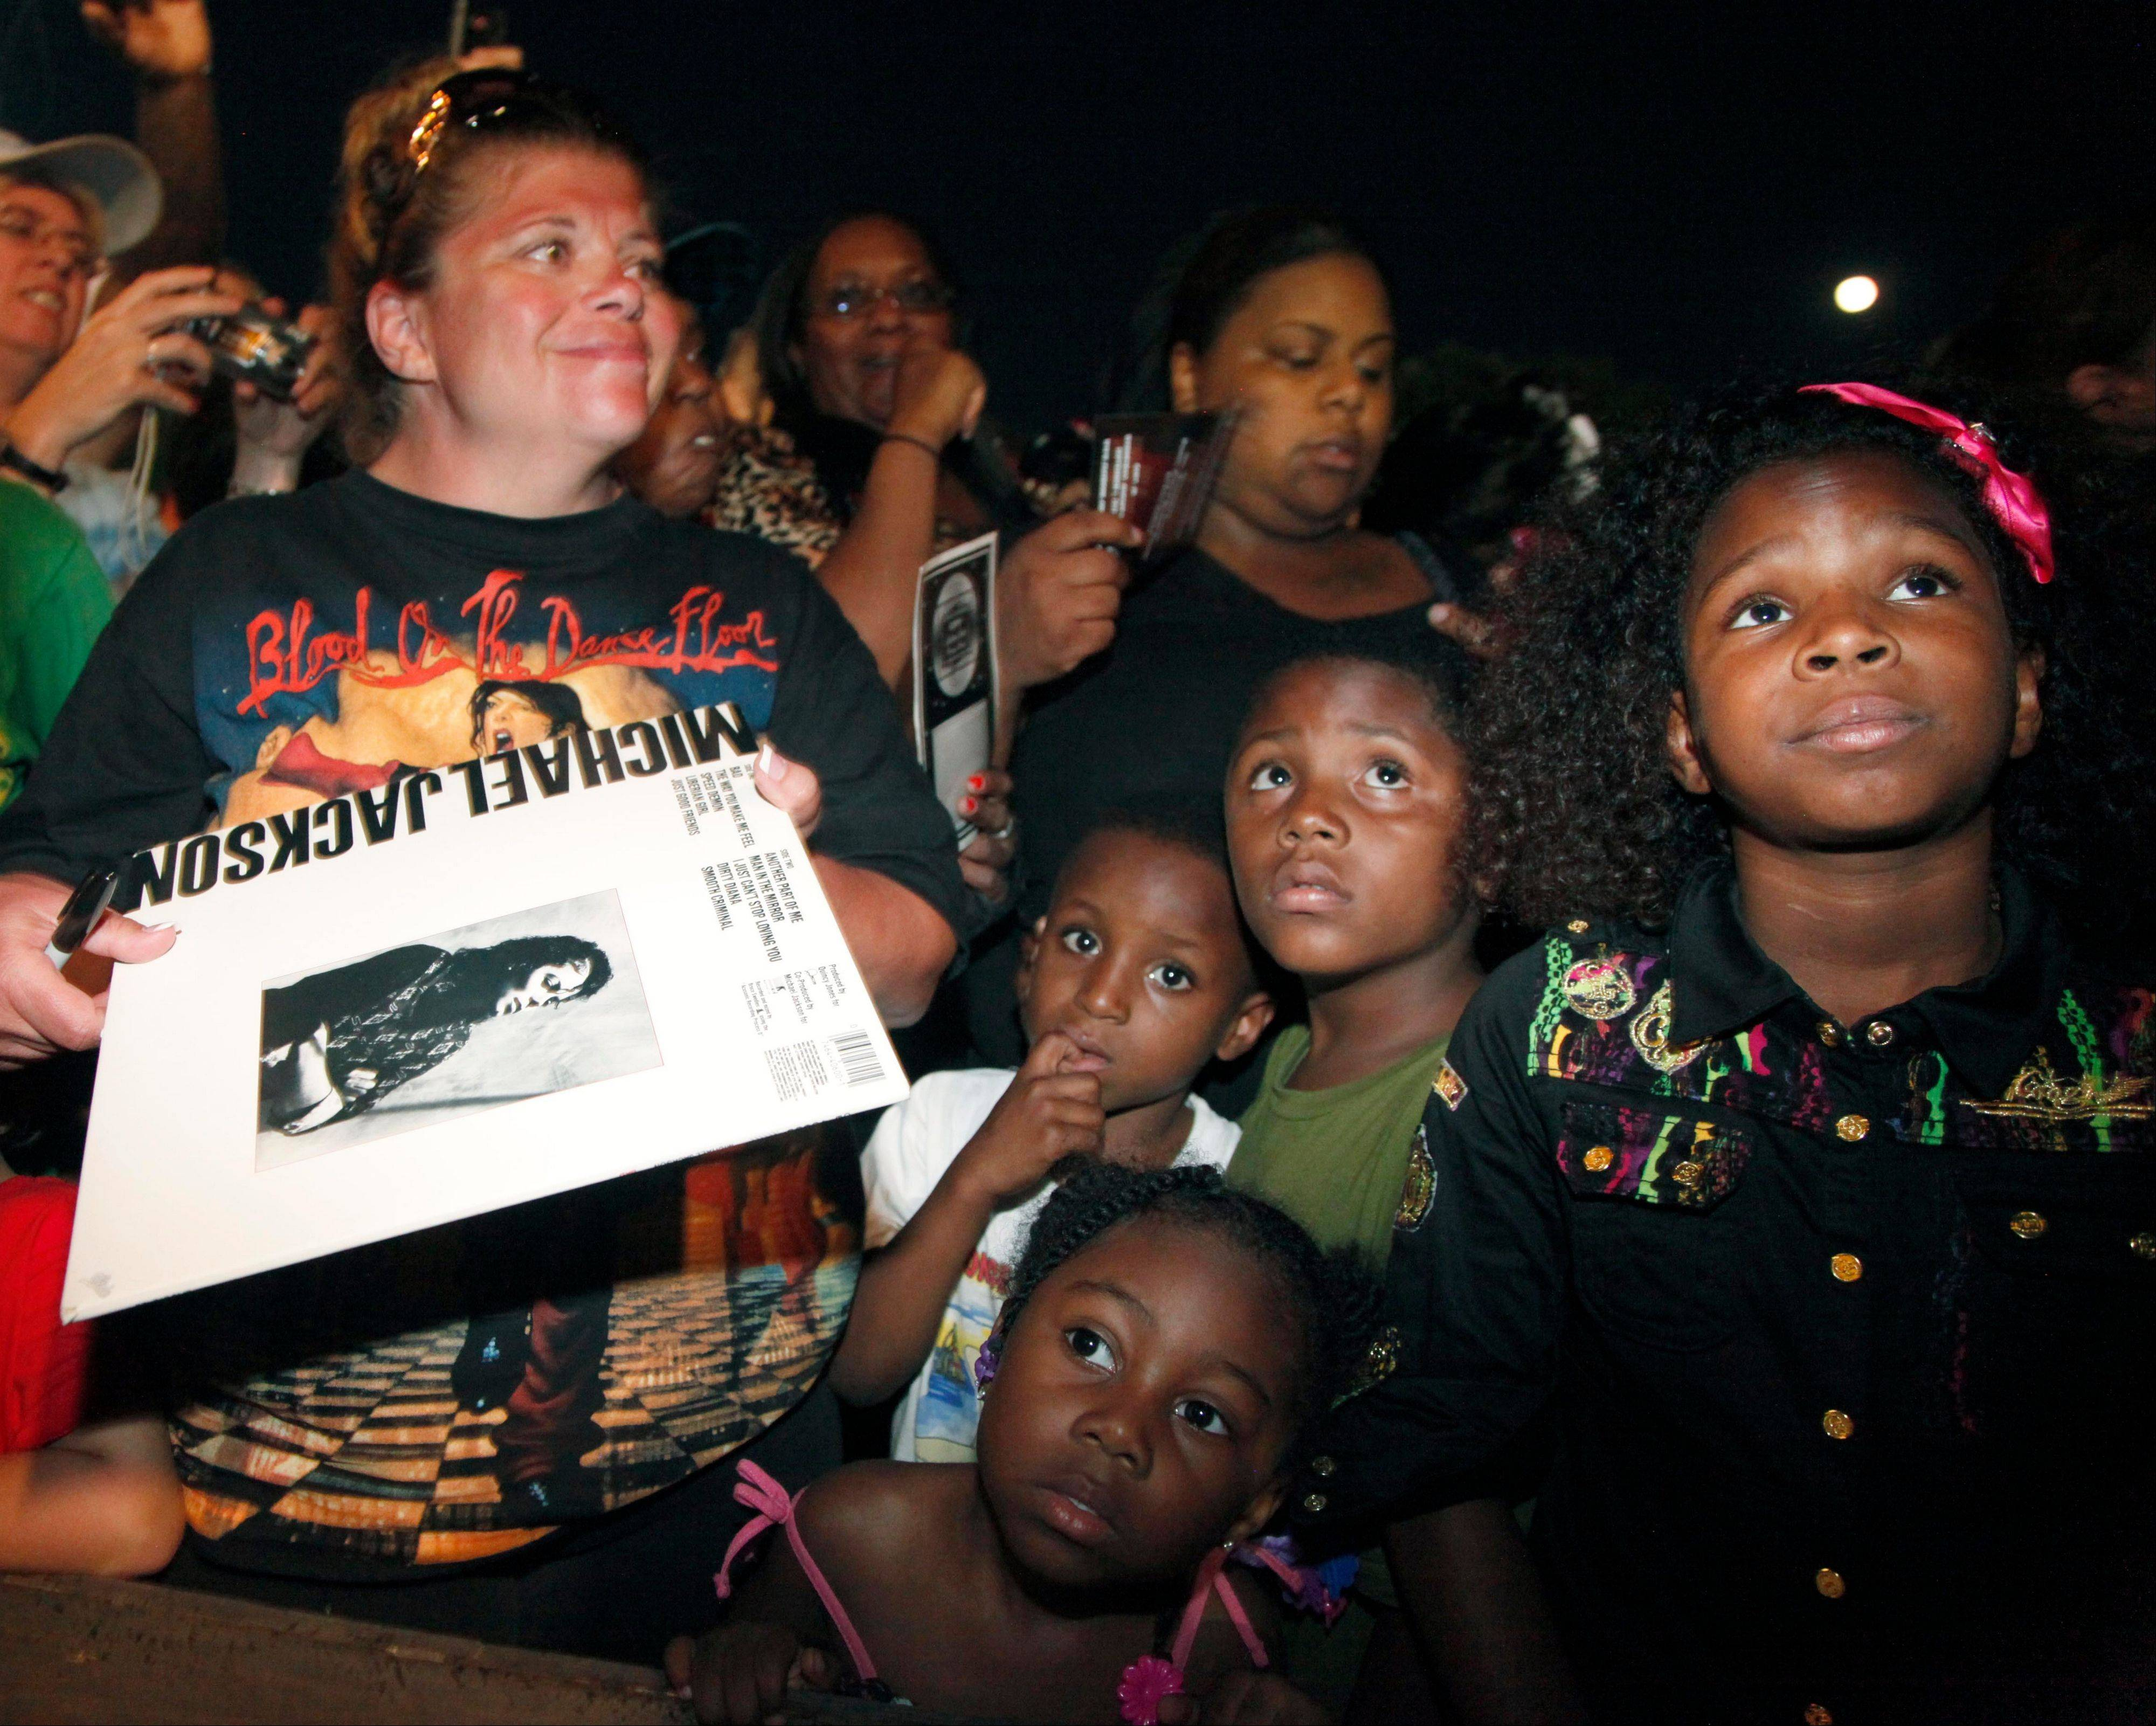 Michael Jackson fans wait to get autographs from his three children -- Prince, Paris, and Blanket -- outside Jackson's boyhood home in Gary, Ind., during a celebration on what would have been Jackson's 54th birthday Wednesday.